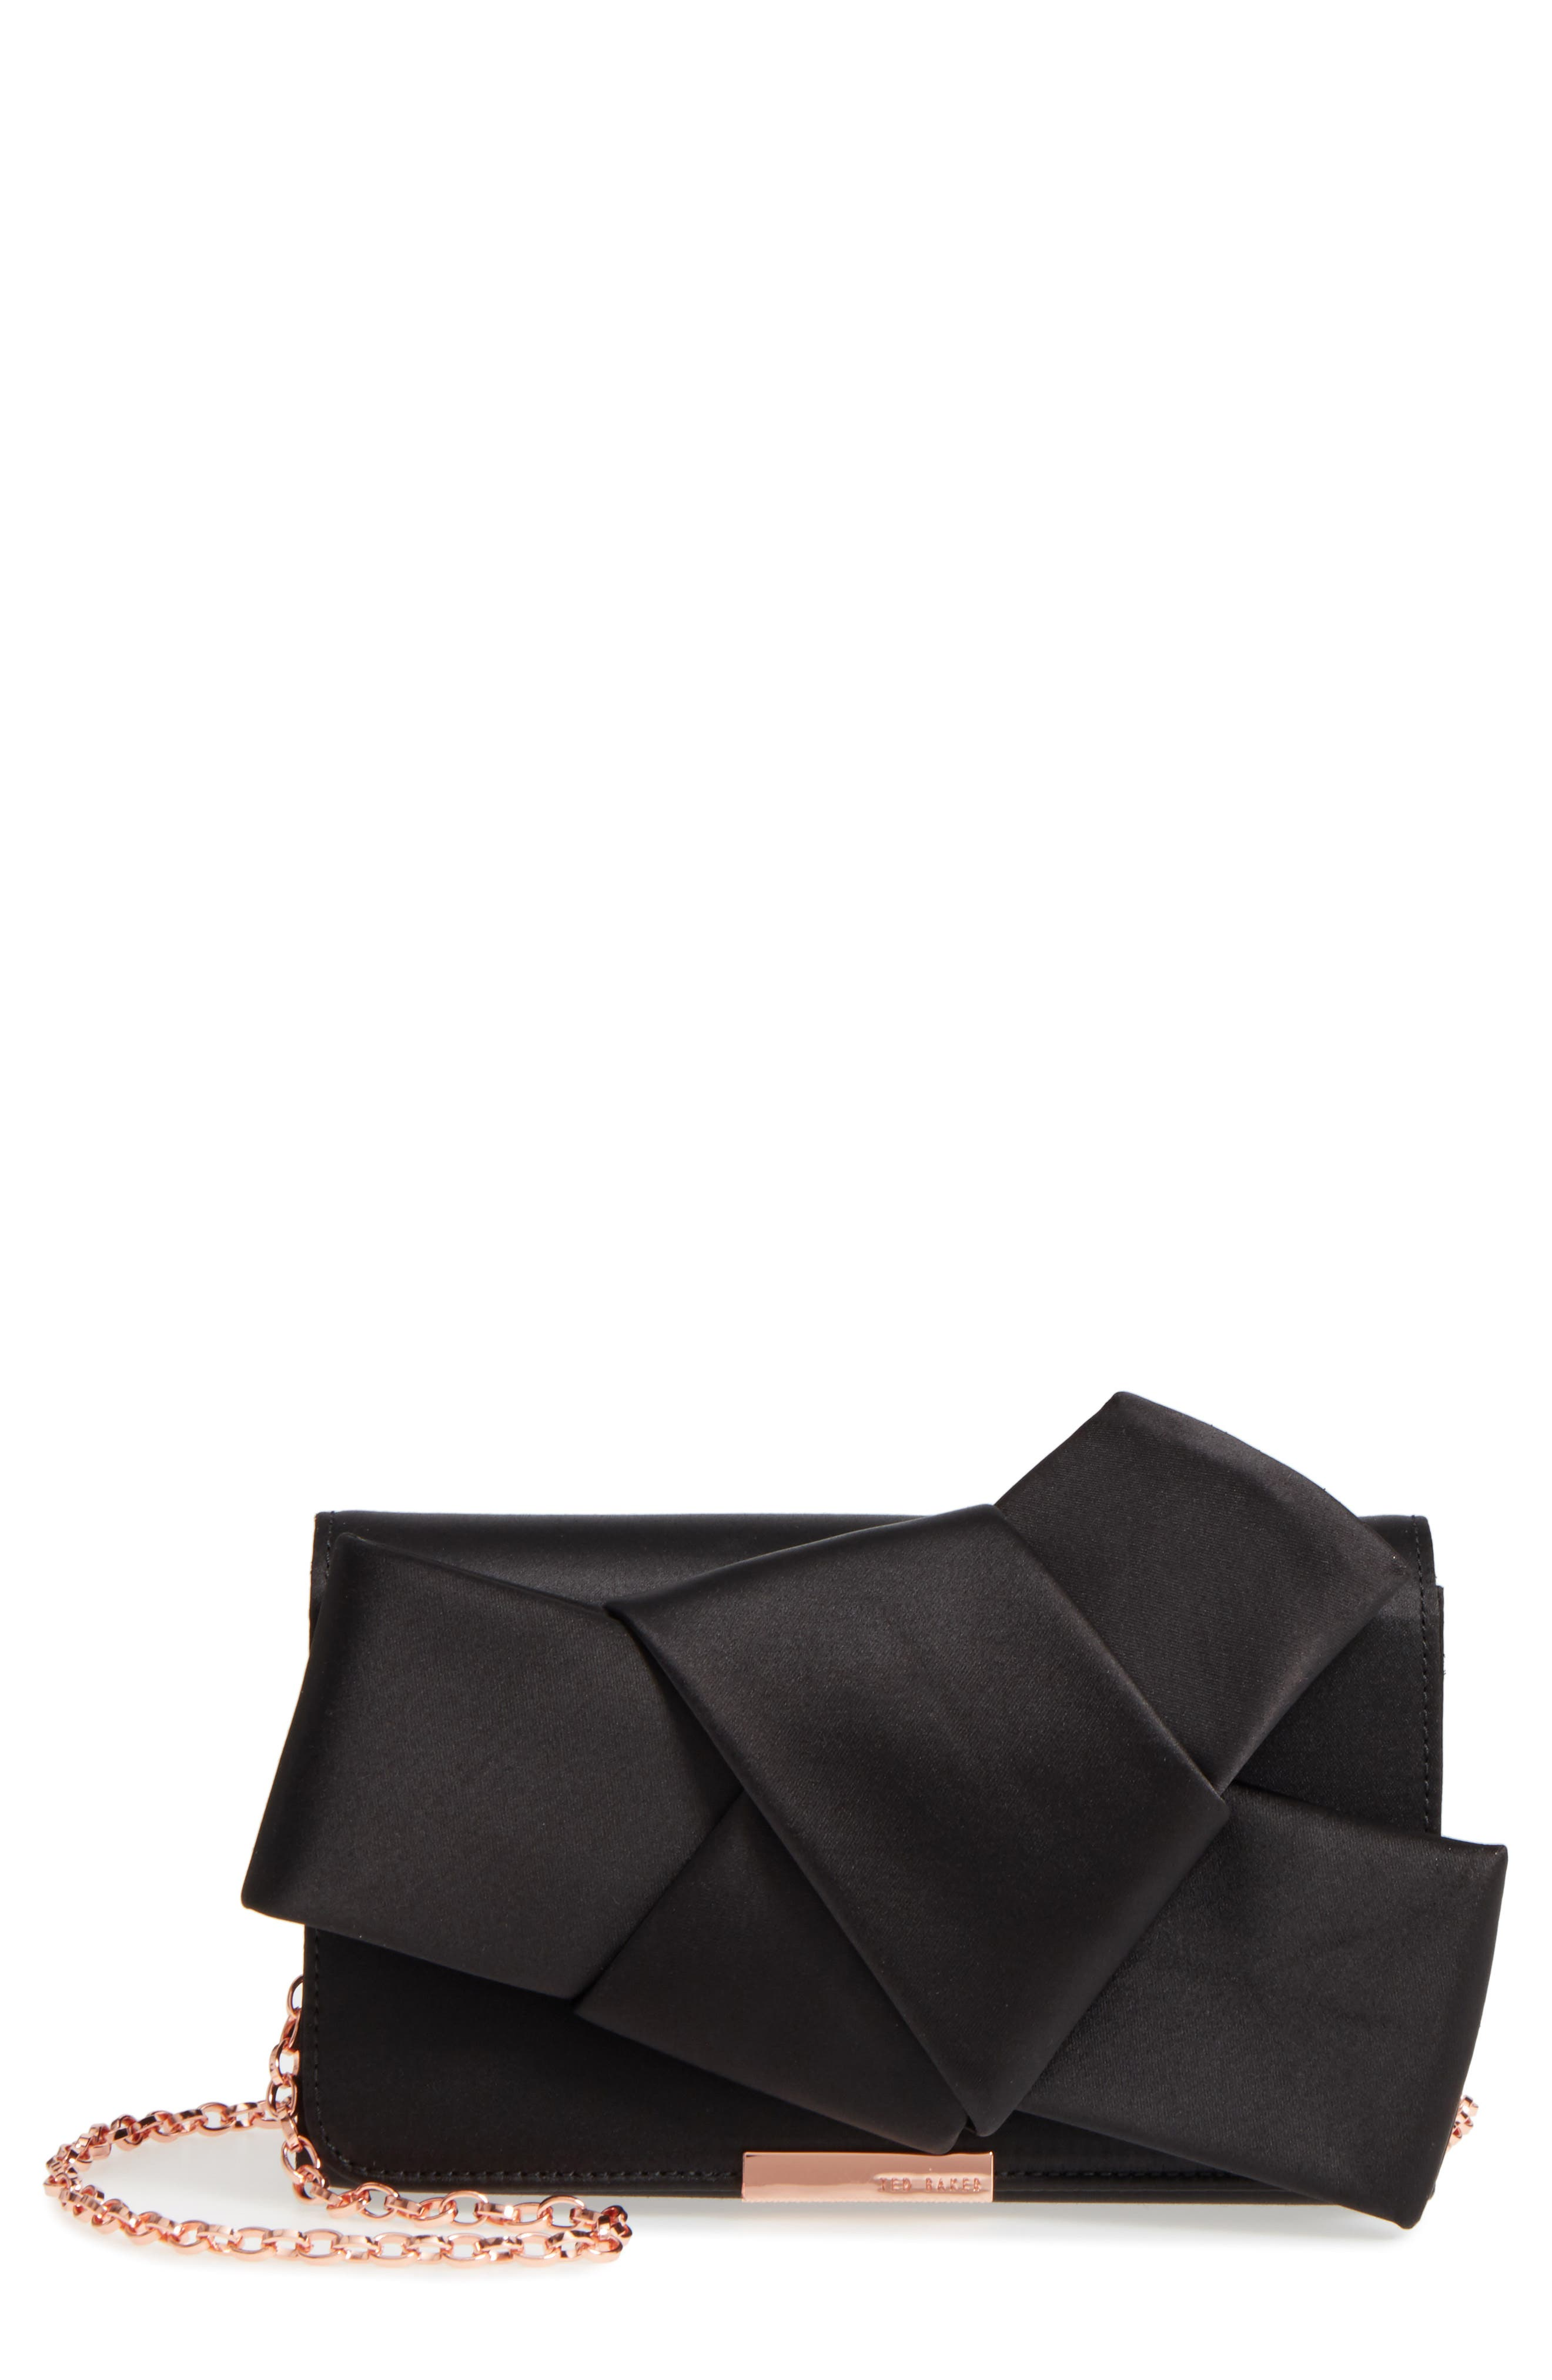 Fefee Satin Knotted Bow Clutch,                             Main thumbnail 1, color,                             001